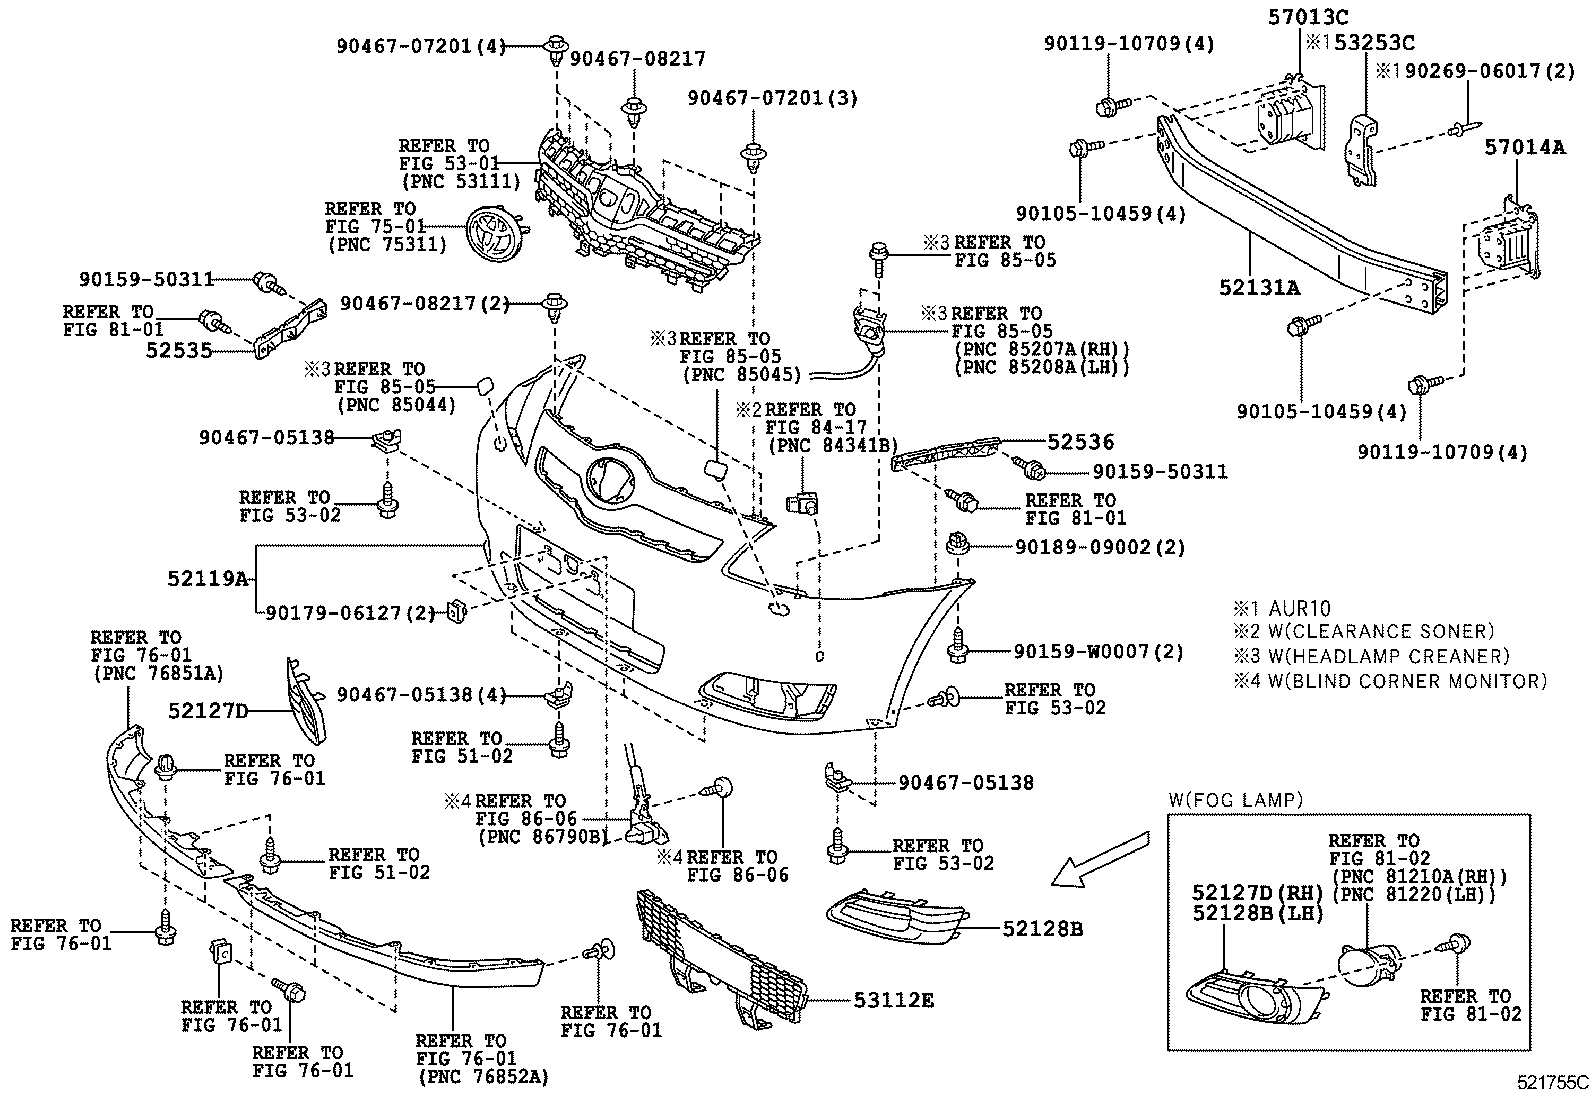 Toyota Ta a 2 7 Engine Diagram together with Peterbilt Orifice Tube Location 2006 additionally 1989 Ford Ranger 2 3 Engine moreover Seven Pin Trailer Wiring Diagram Ford F 150 Free Pin further Toyota Camry Fuse Box Diagram As Well 2010 Toyota Highlander Wiring. on 2012 toyota ta a fuse box diagram